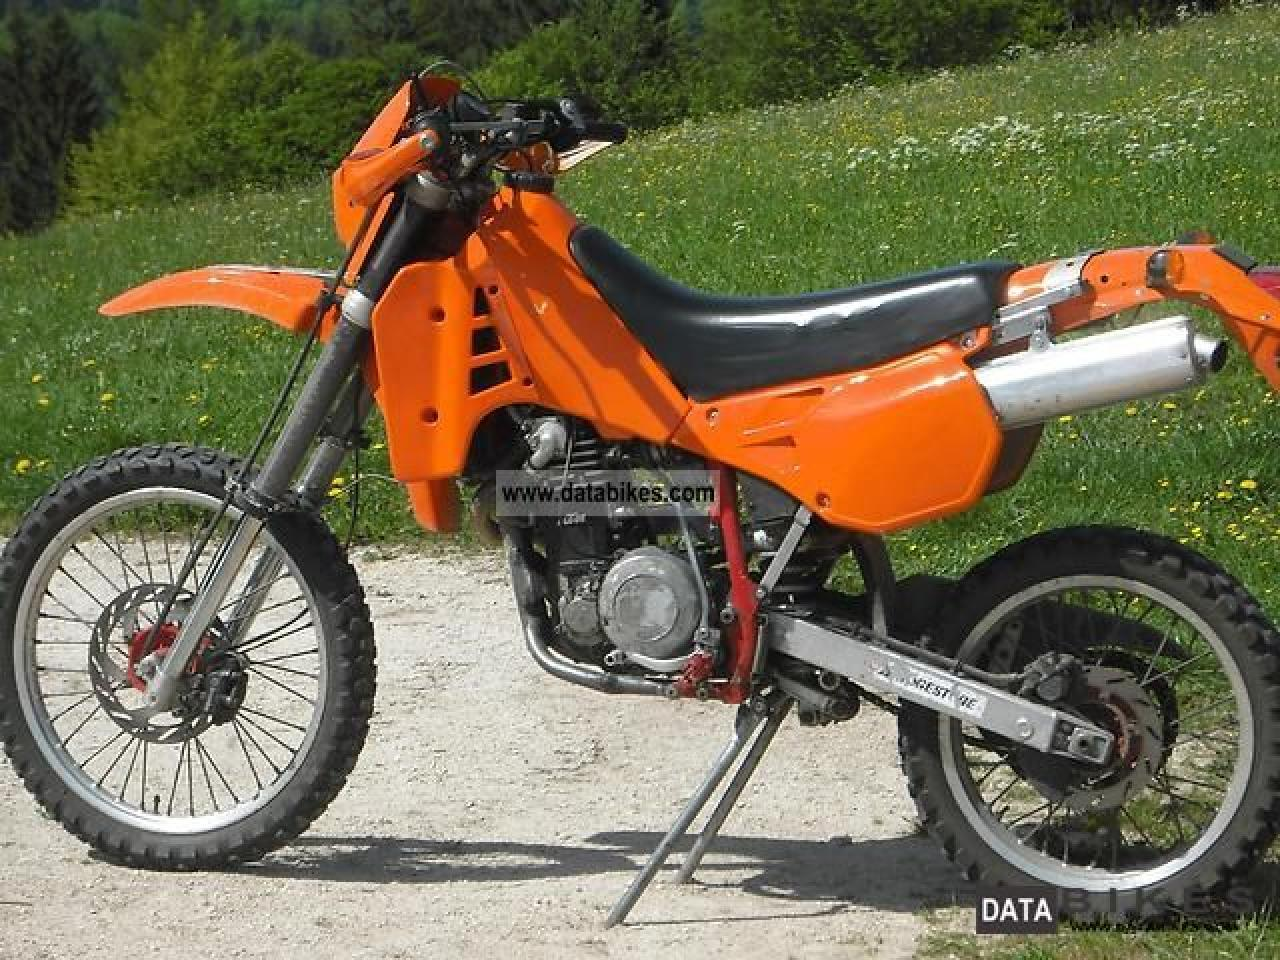 1989 ktm enduro 600 lc 4 pics specs and information. Black Bedroom Furniture Sets. Home Design Ideas